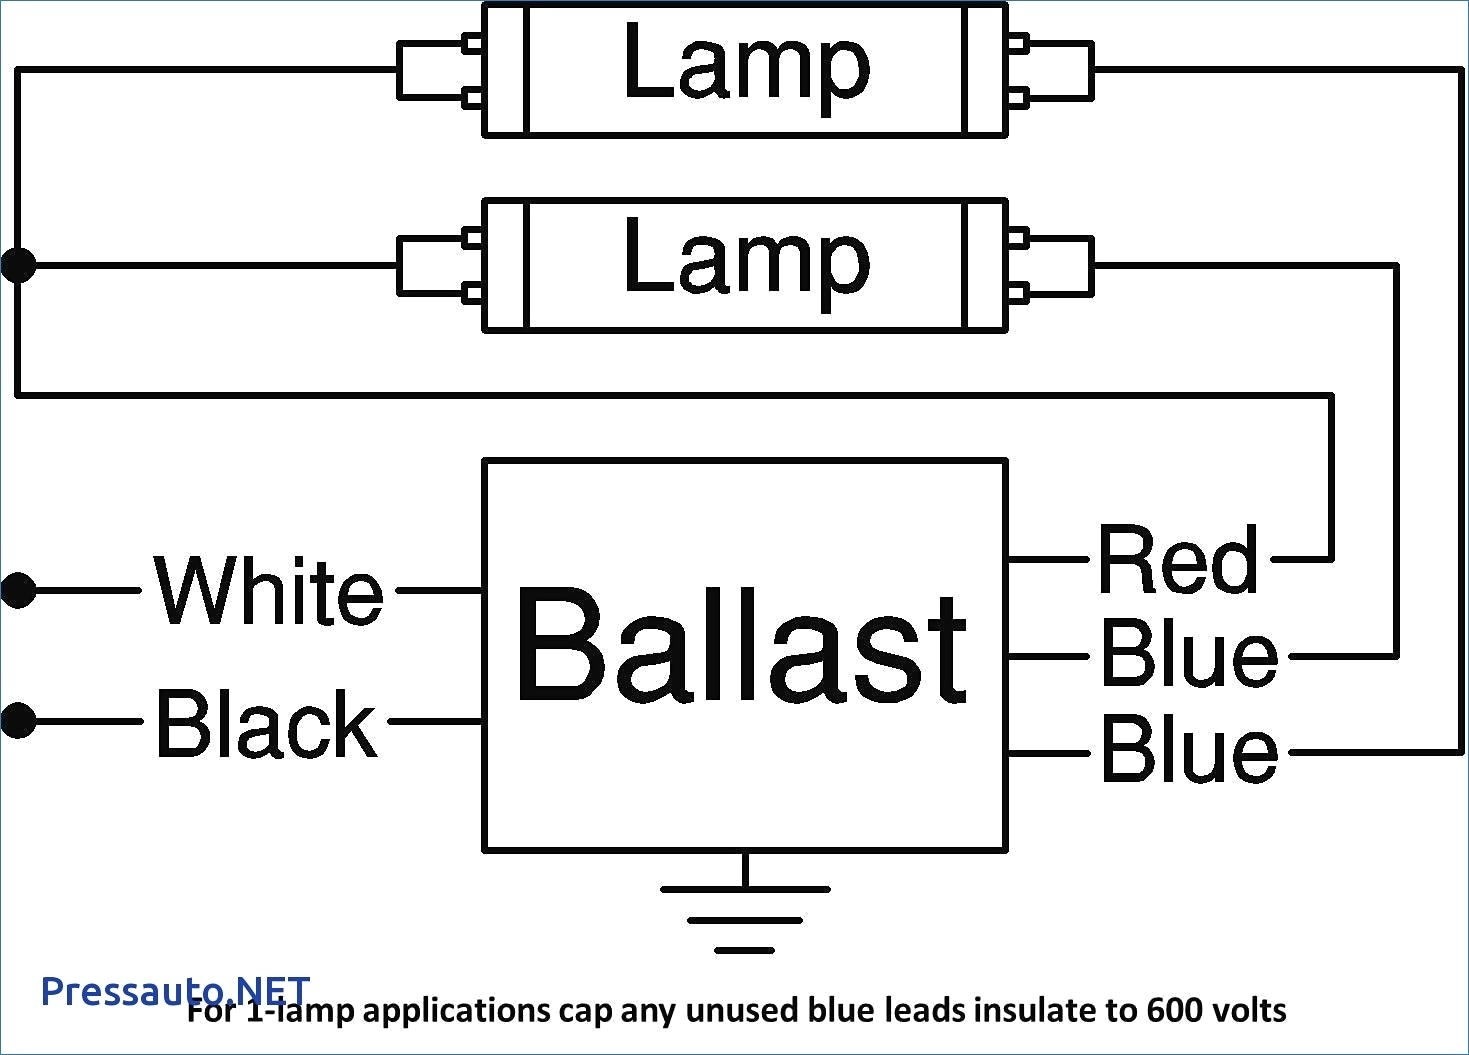 fluorescent ballast wiring schematic Download-2 Lamp Ballast Wiring Diagram Unique 4-t